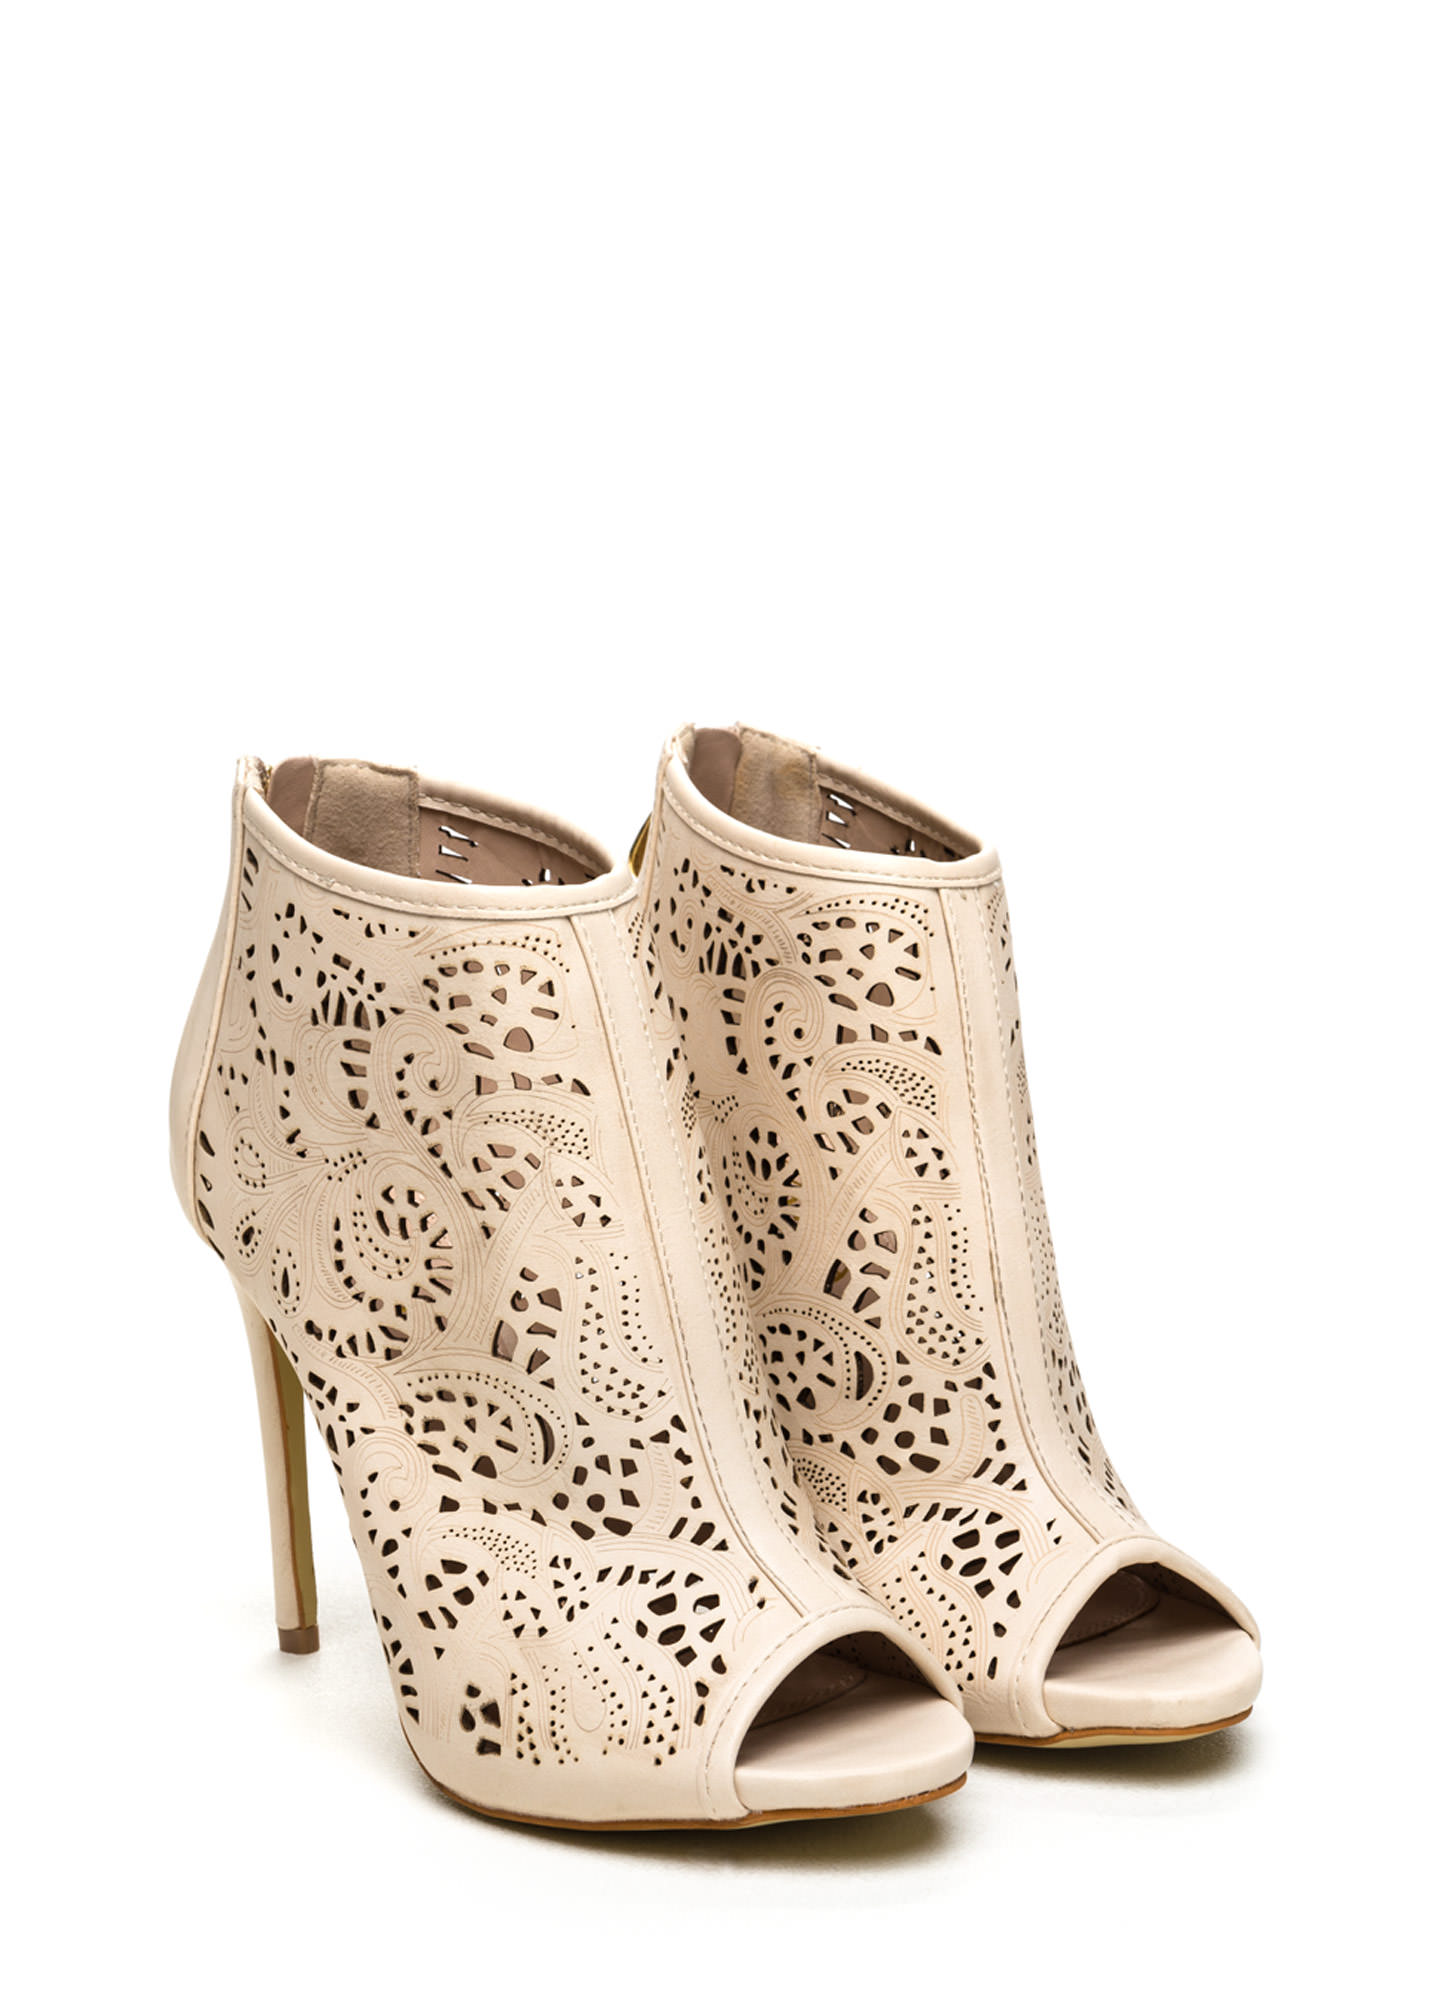 Nude Cut Out Heels 3NMy5iwV